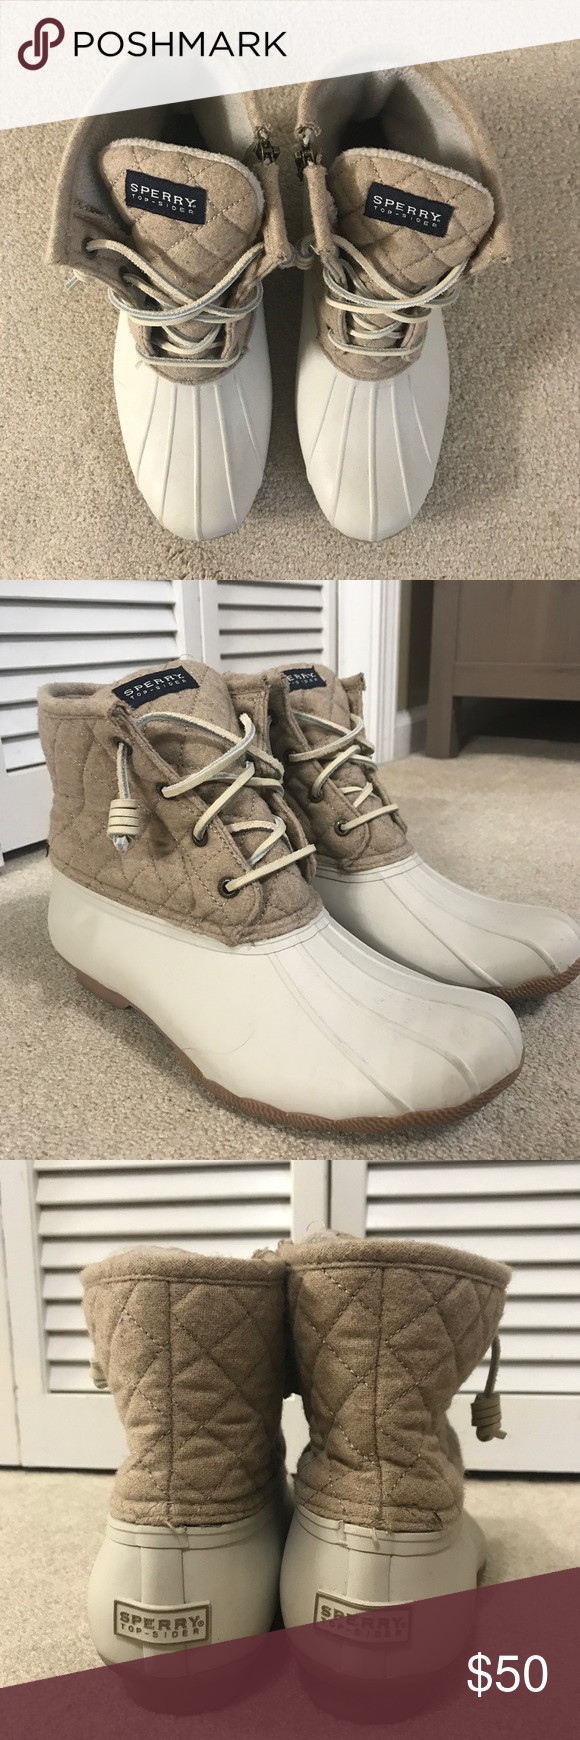 on sale 8eafc 8a871 SPERRY Saltwater Duck Boot - Quilted Oat Women s size 10 SPERRY Saltwater  Duck boots in oat with quilted detail. Barely worn! Side zipper great for  putting ...